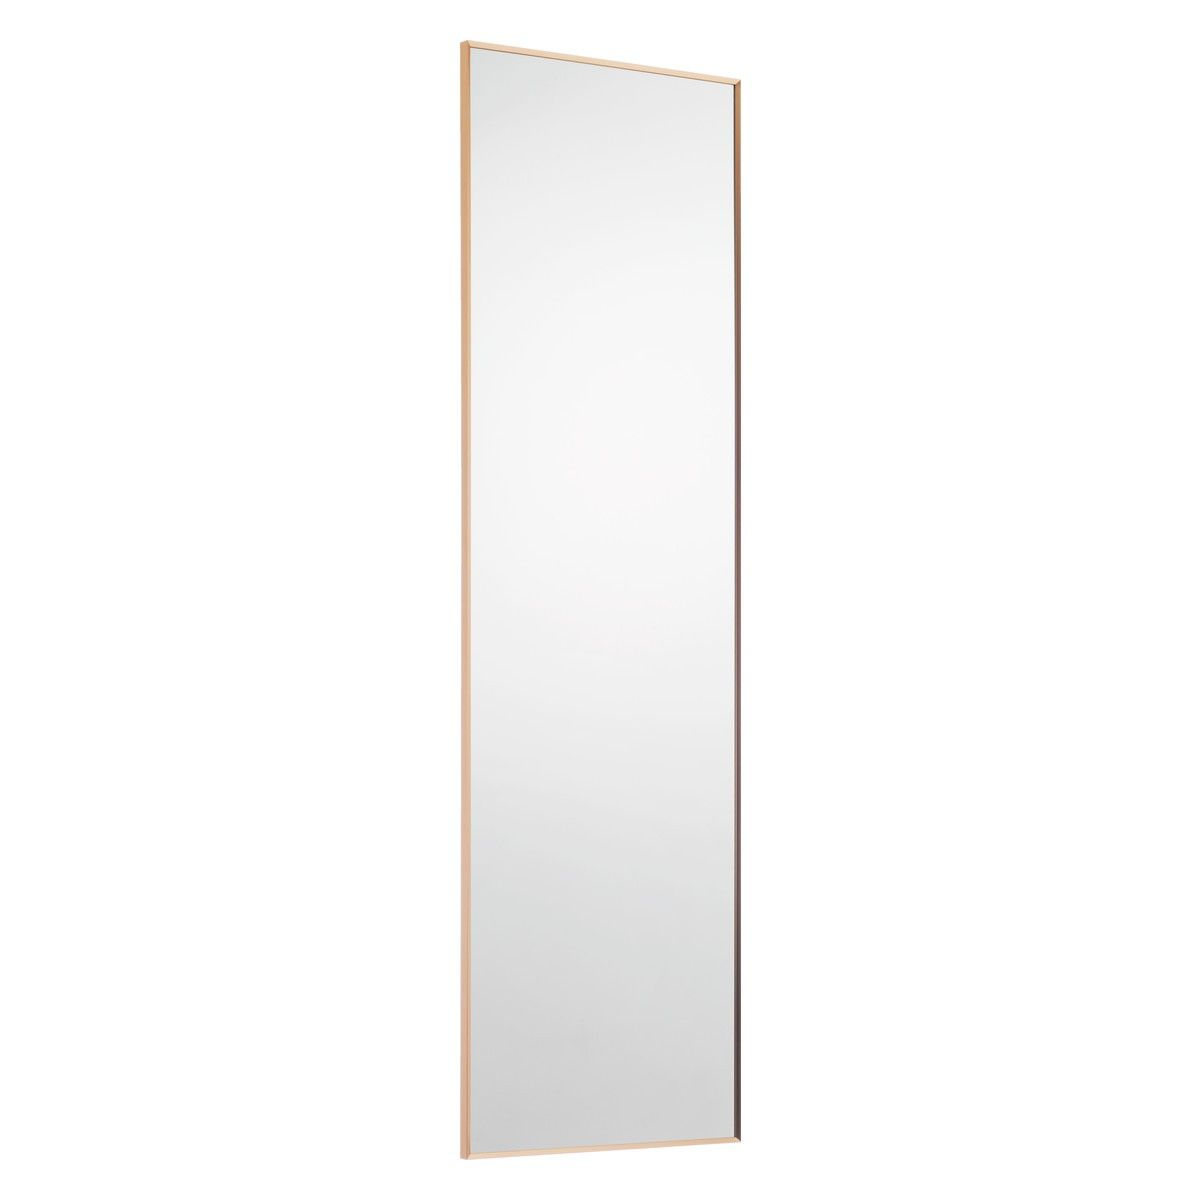 Kupari 40 x 140cm copper long wall mirror buy now at habitat uk kupari 40 x 140cm copper long wall mirror buy now at habitat uk amipublicfo Gallery